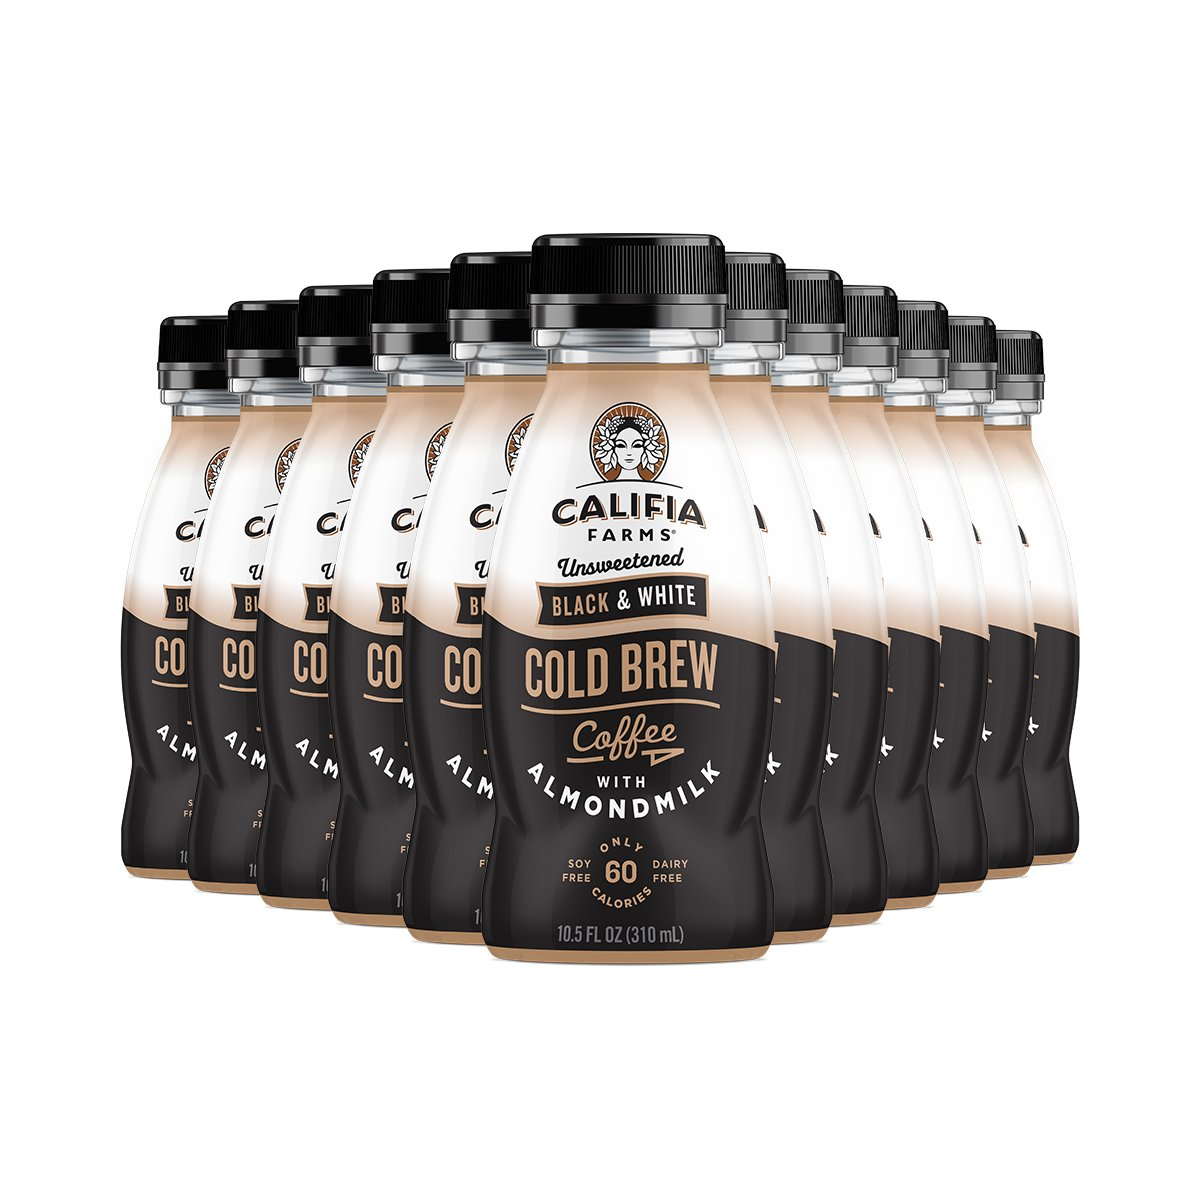 Califia Farms Cold Brew Coffee with Almondmilk, Dairy Free, Plant Milk, Vegan, Non-GMO, Black & White, 10.5 Oz (Pack of 12)